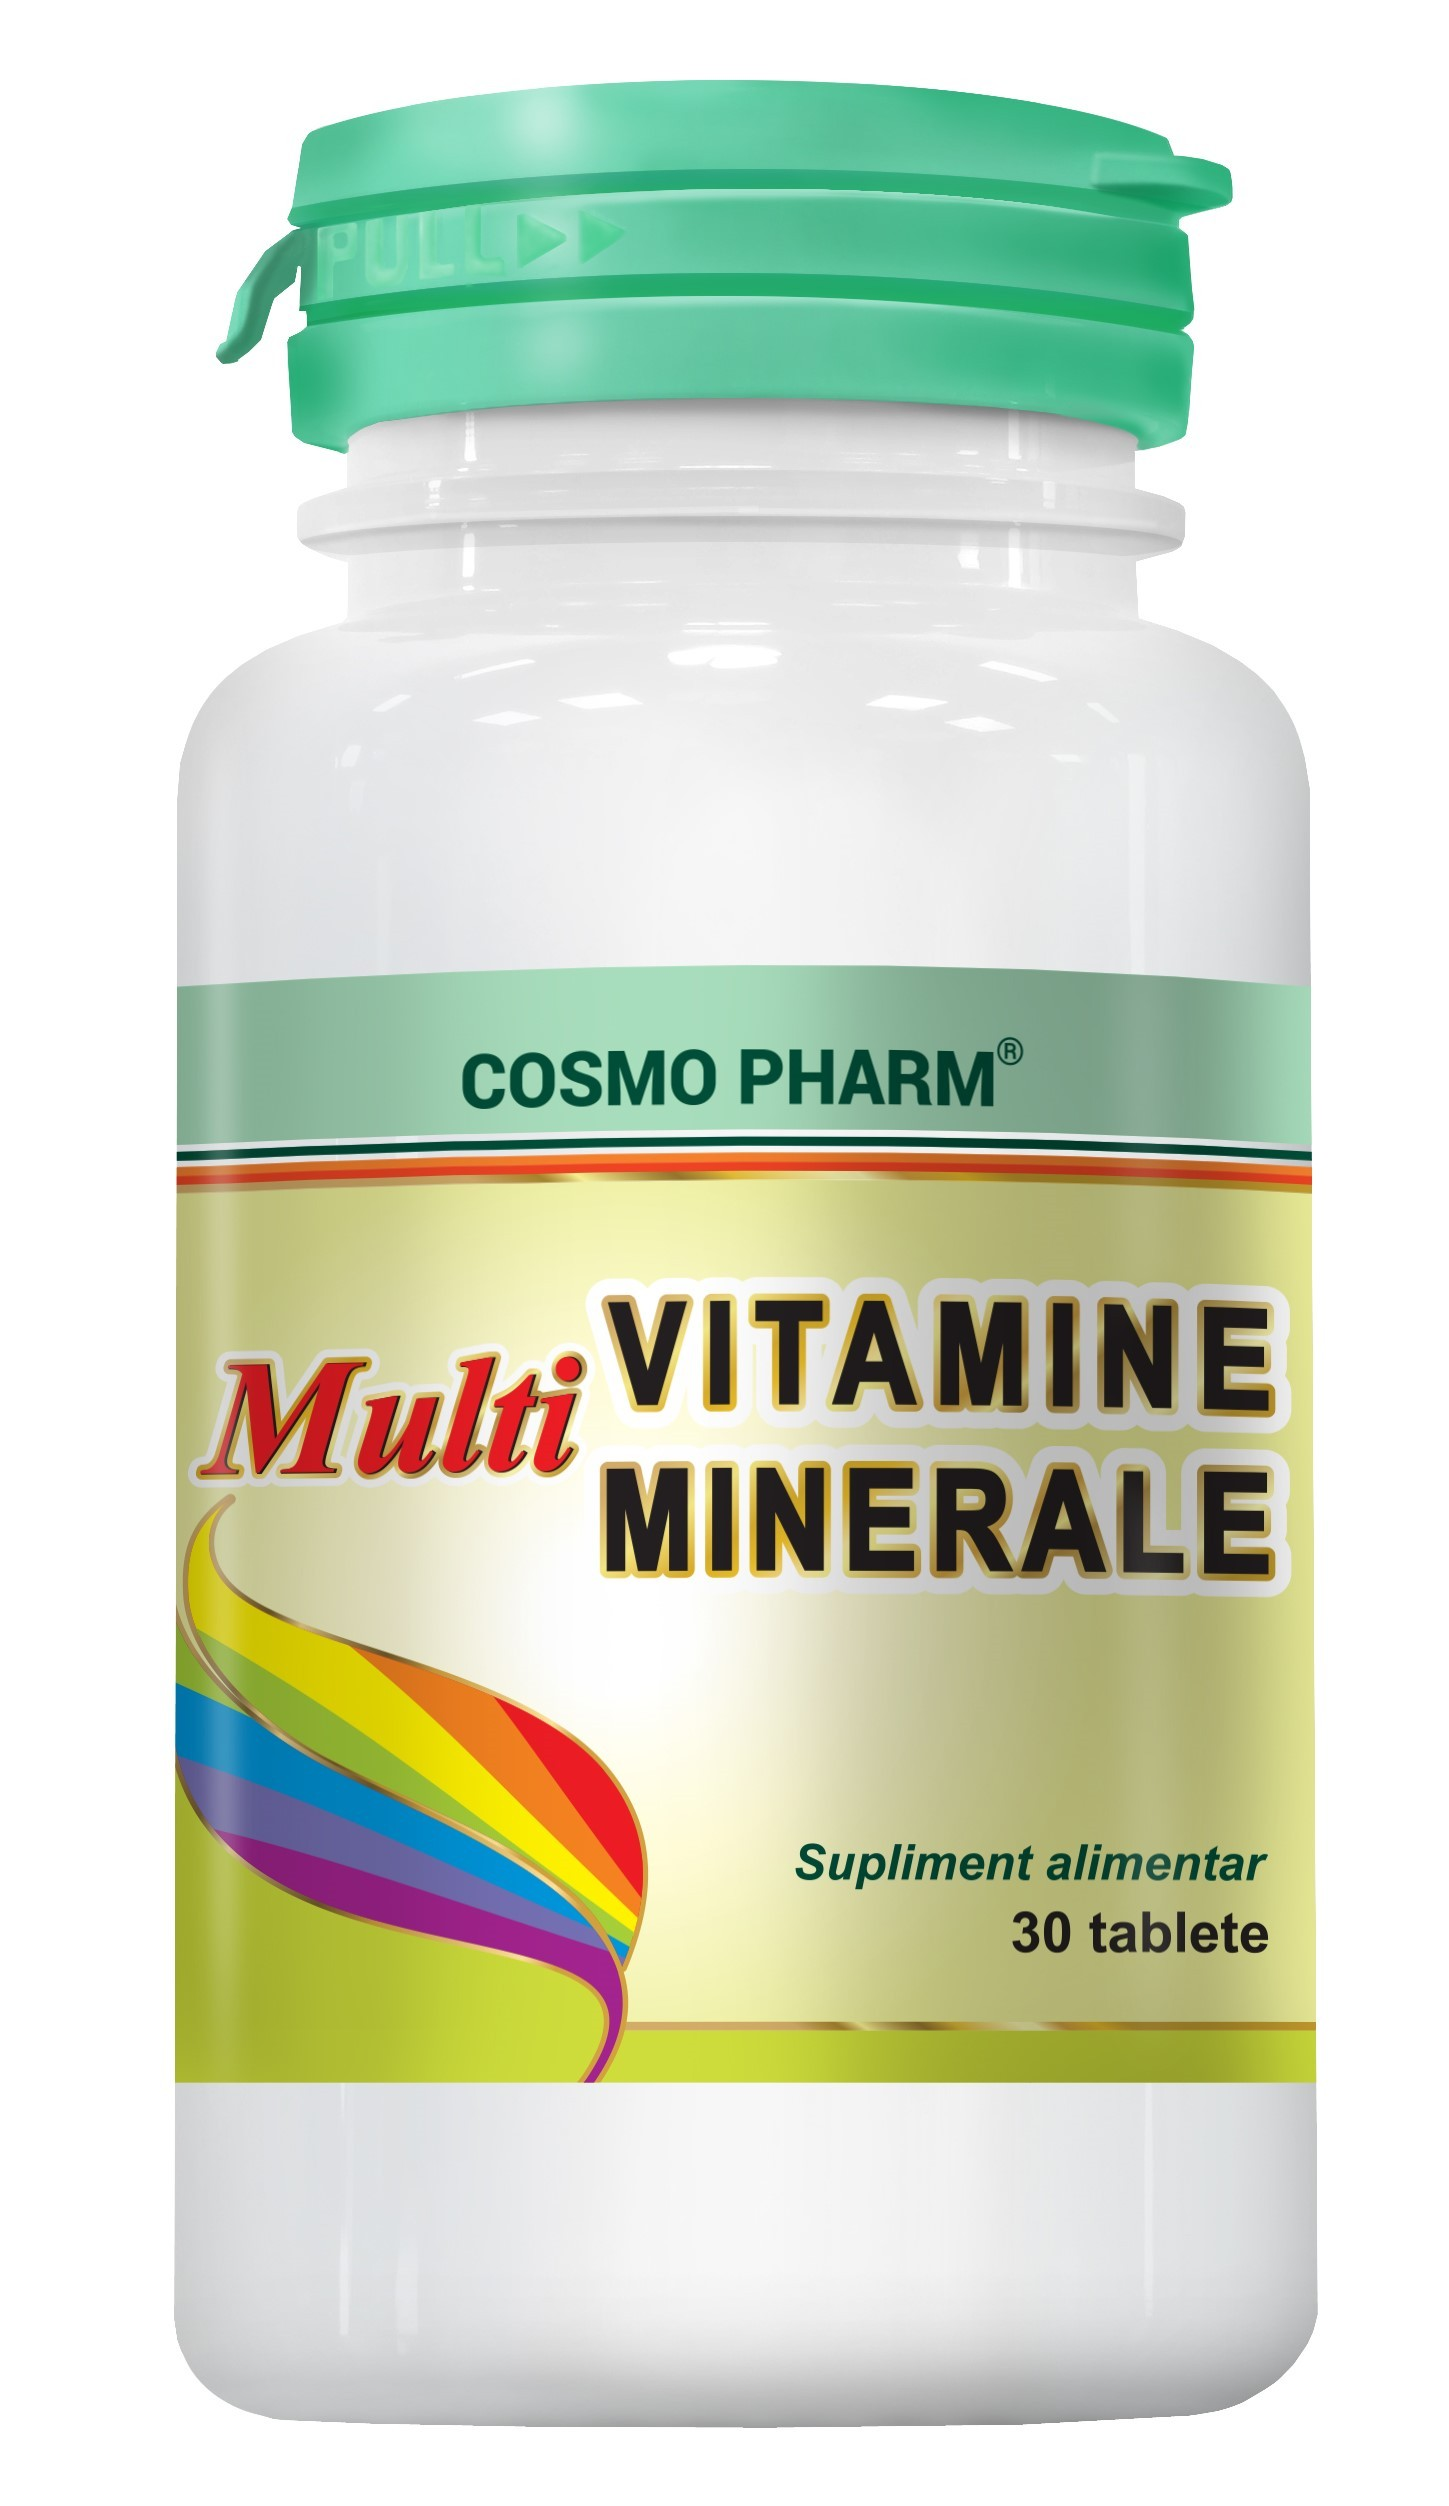 MULTIVITAMINE - MINERALE 30CPS thumbnail